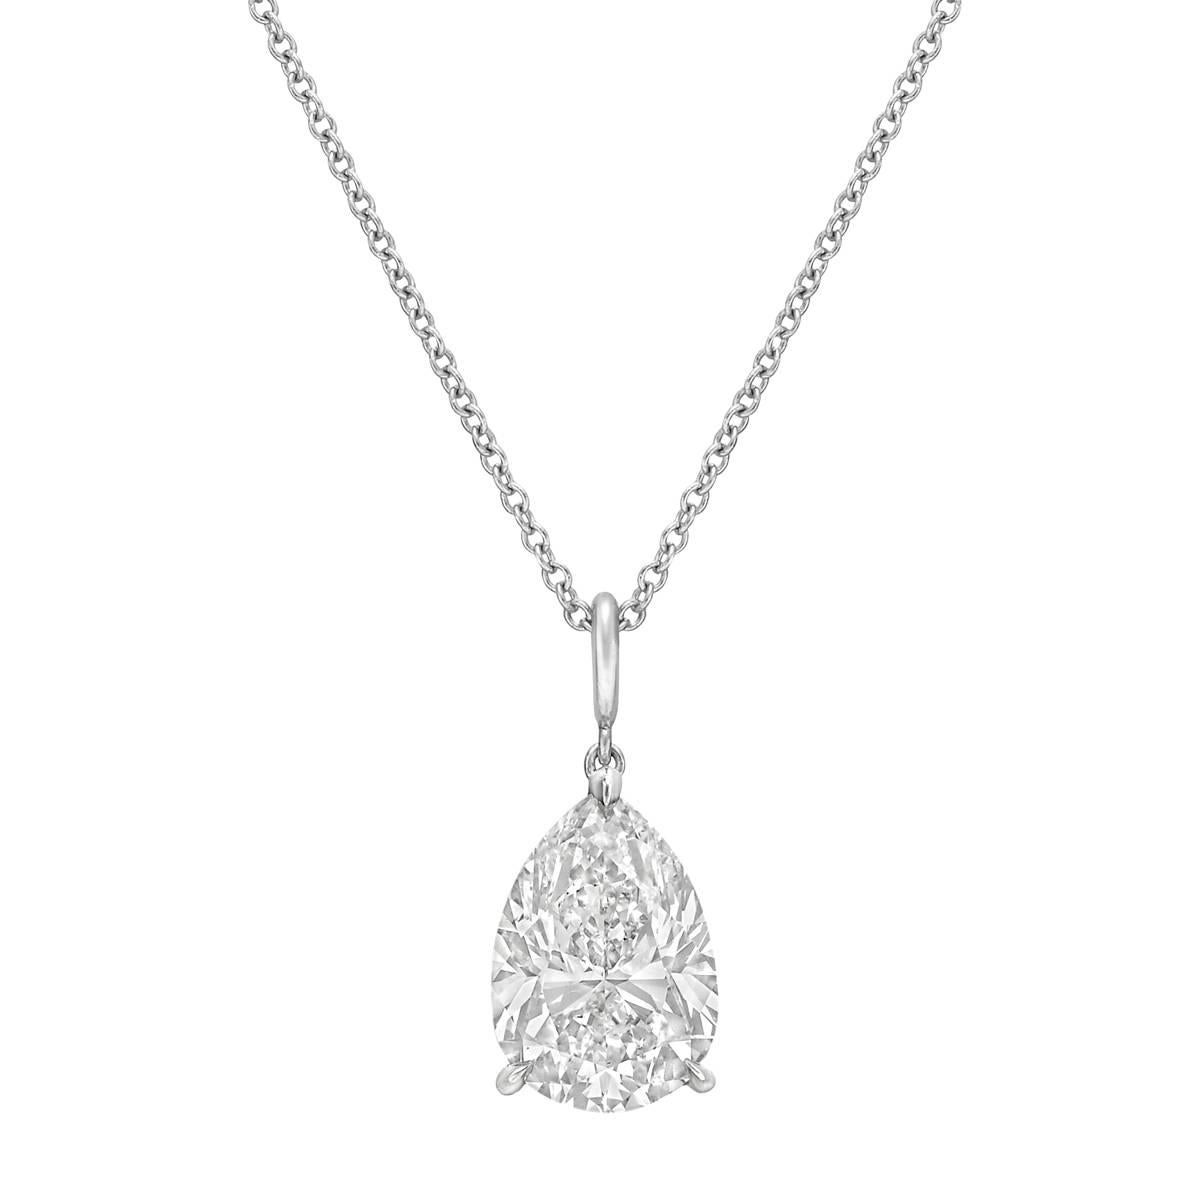 crystal eklexic closer products pear pendant large necklace shaped